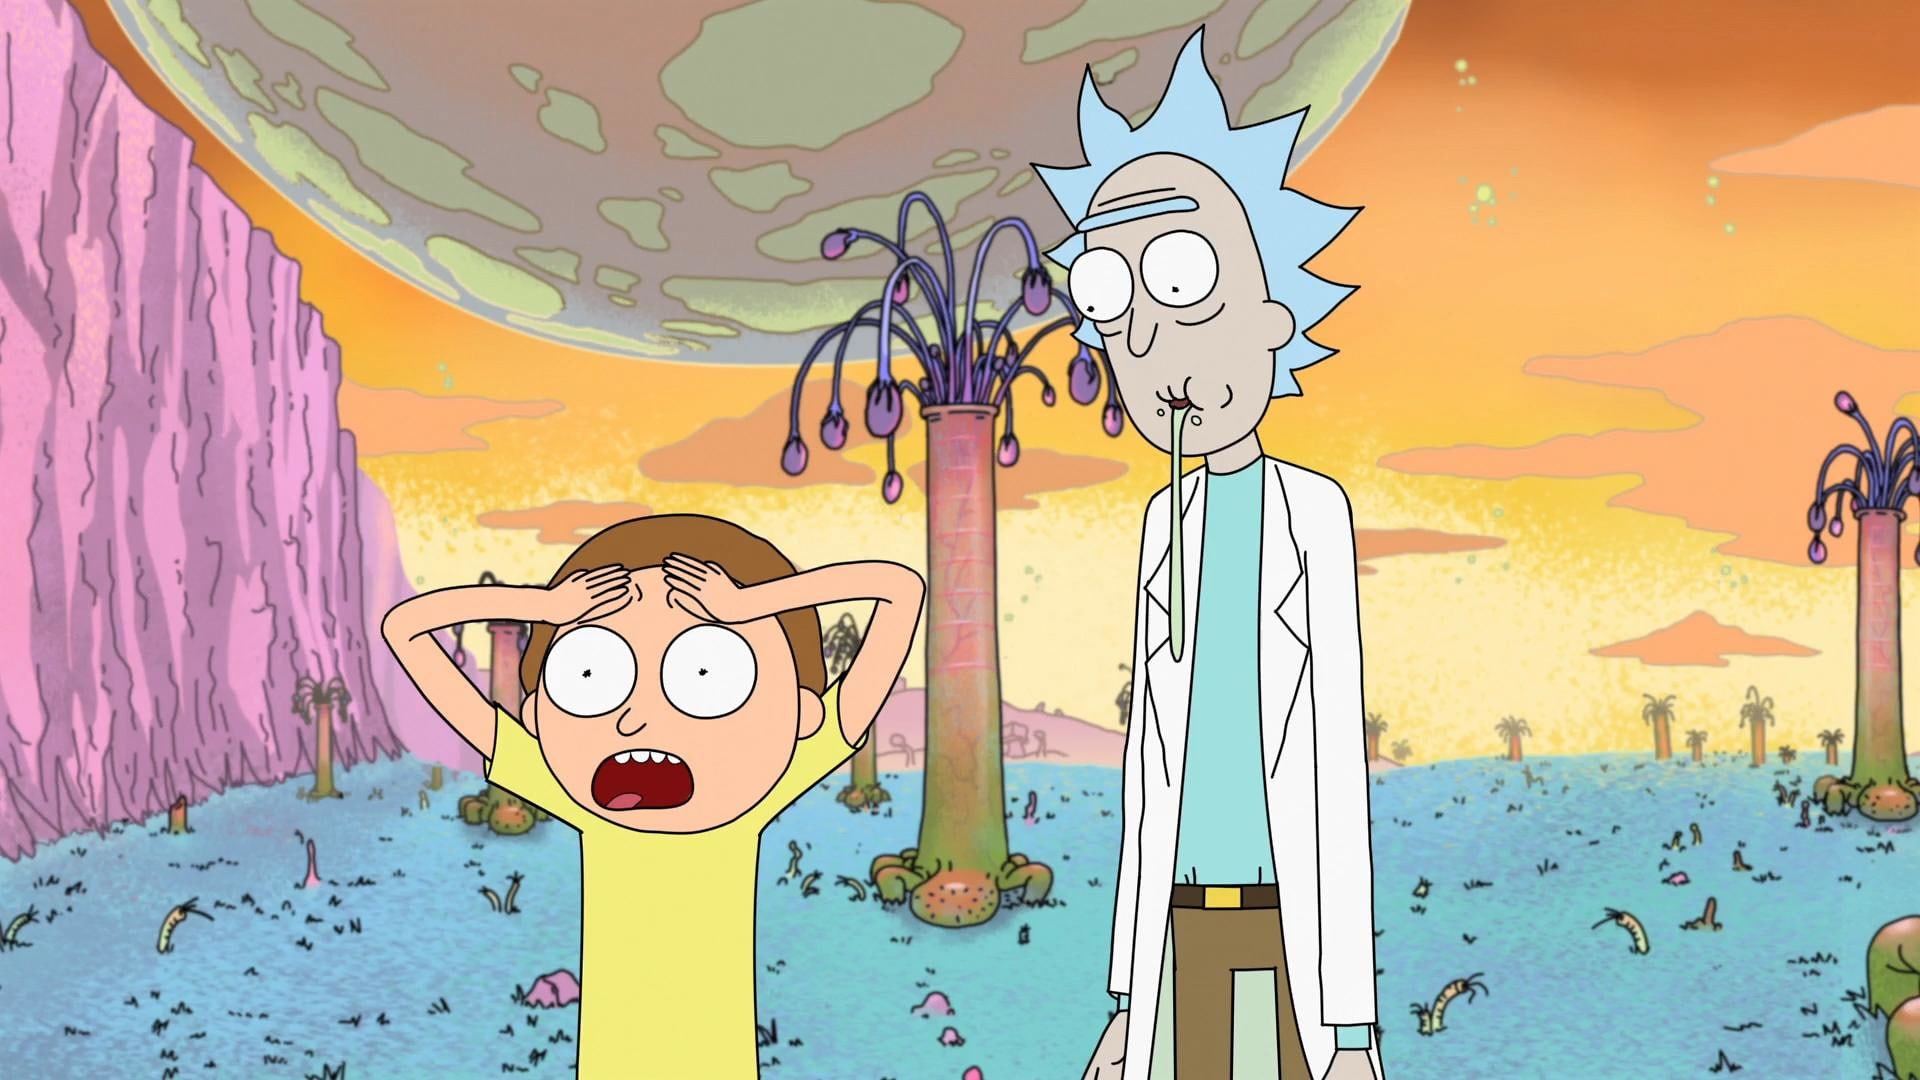 how to understand rick and morty